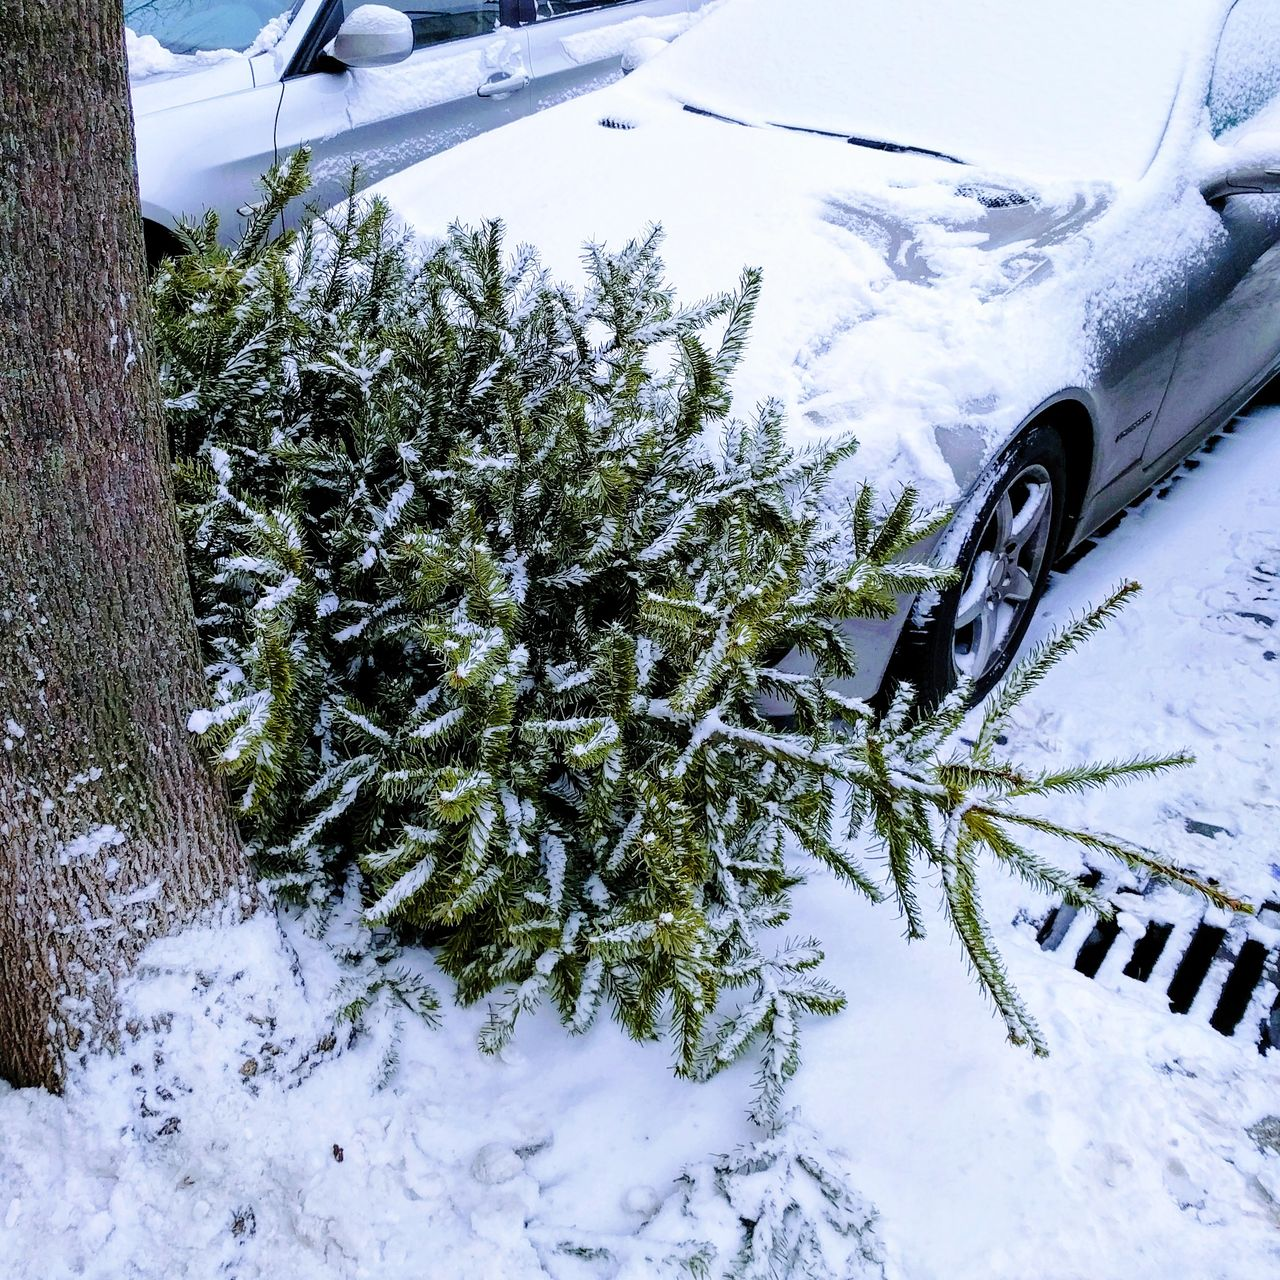 Car Tree Snow Winter Transportation Land Vehicle Cold Temperature No People Day Nature Outdoors Close-up Xmas Tree Xmas🎄 Xmas Is Over Winter Wonderland Wintertime